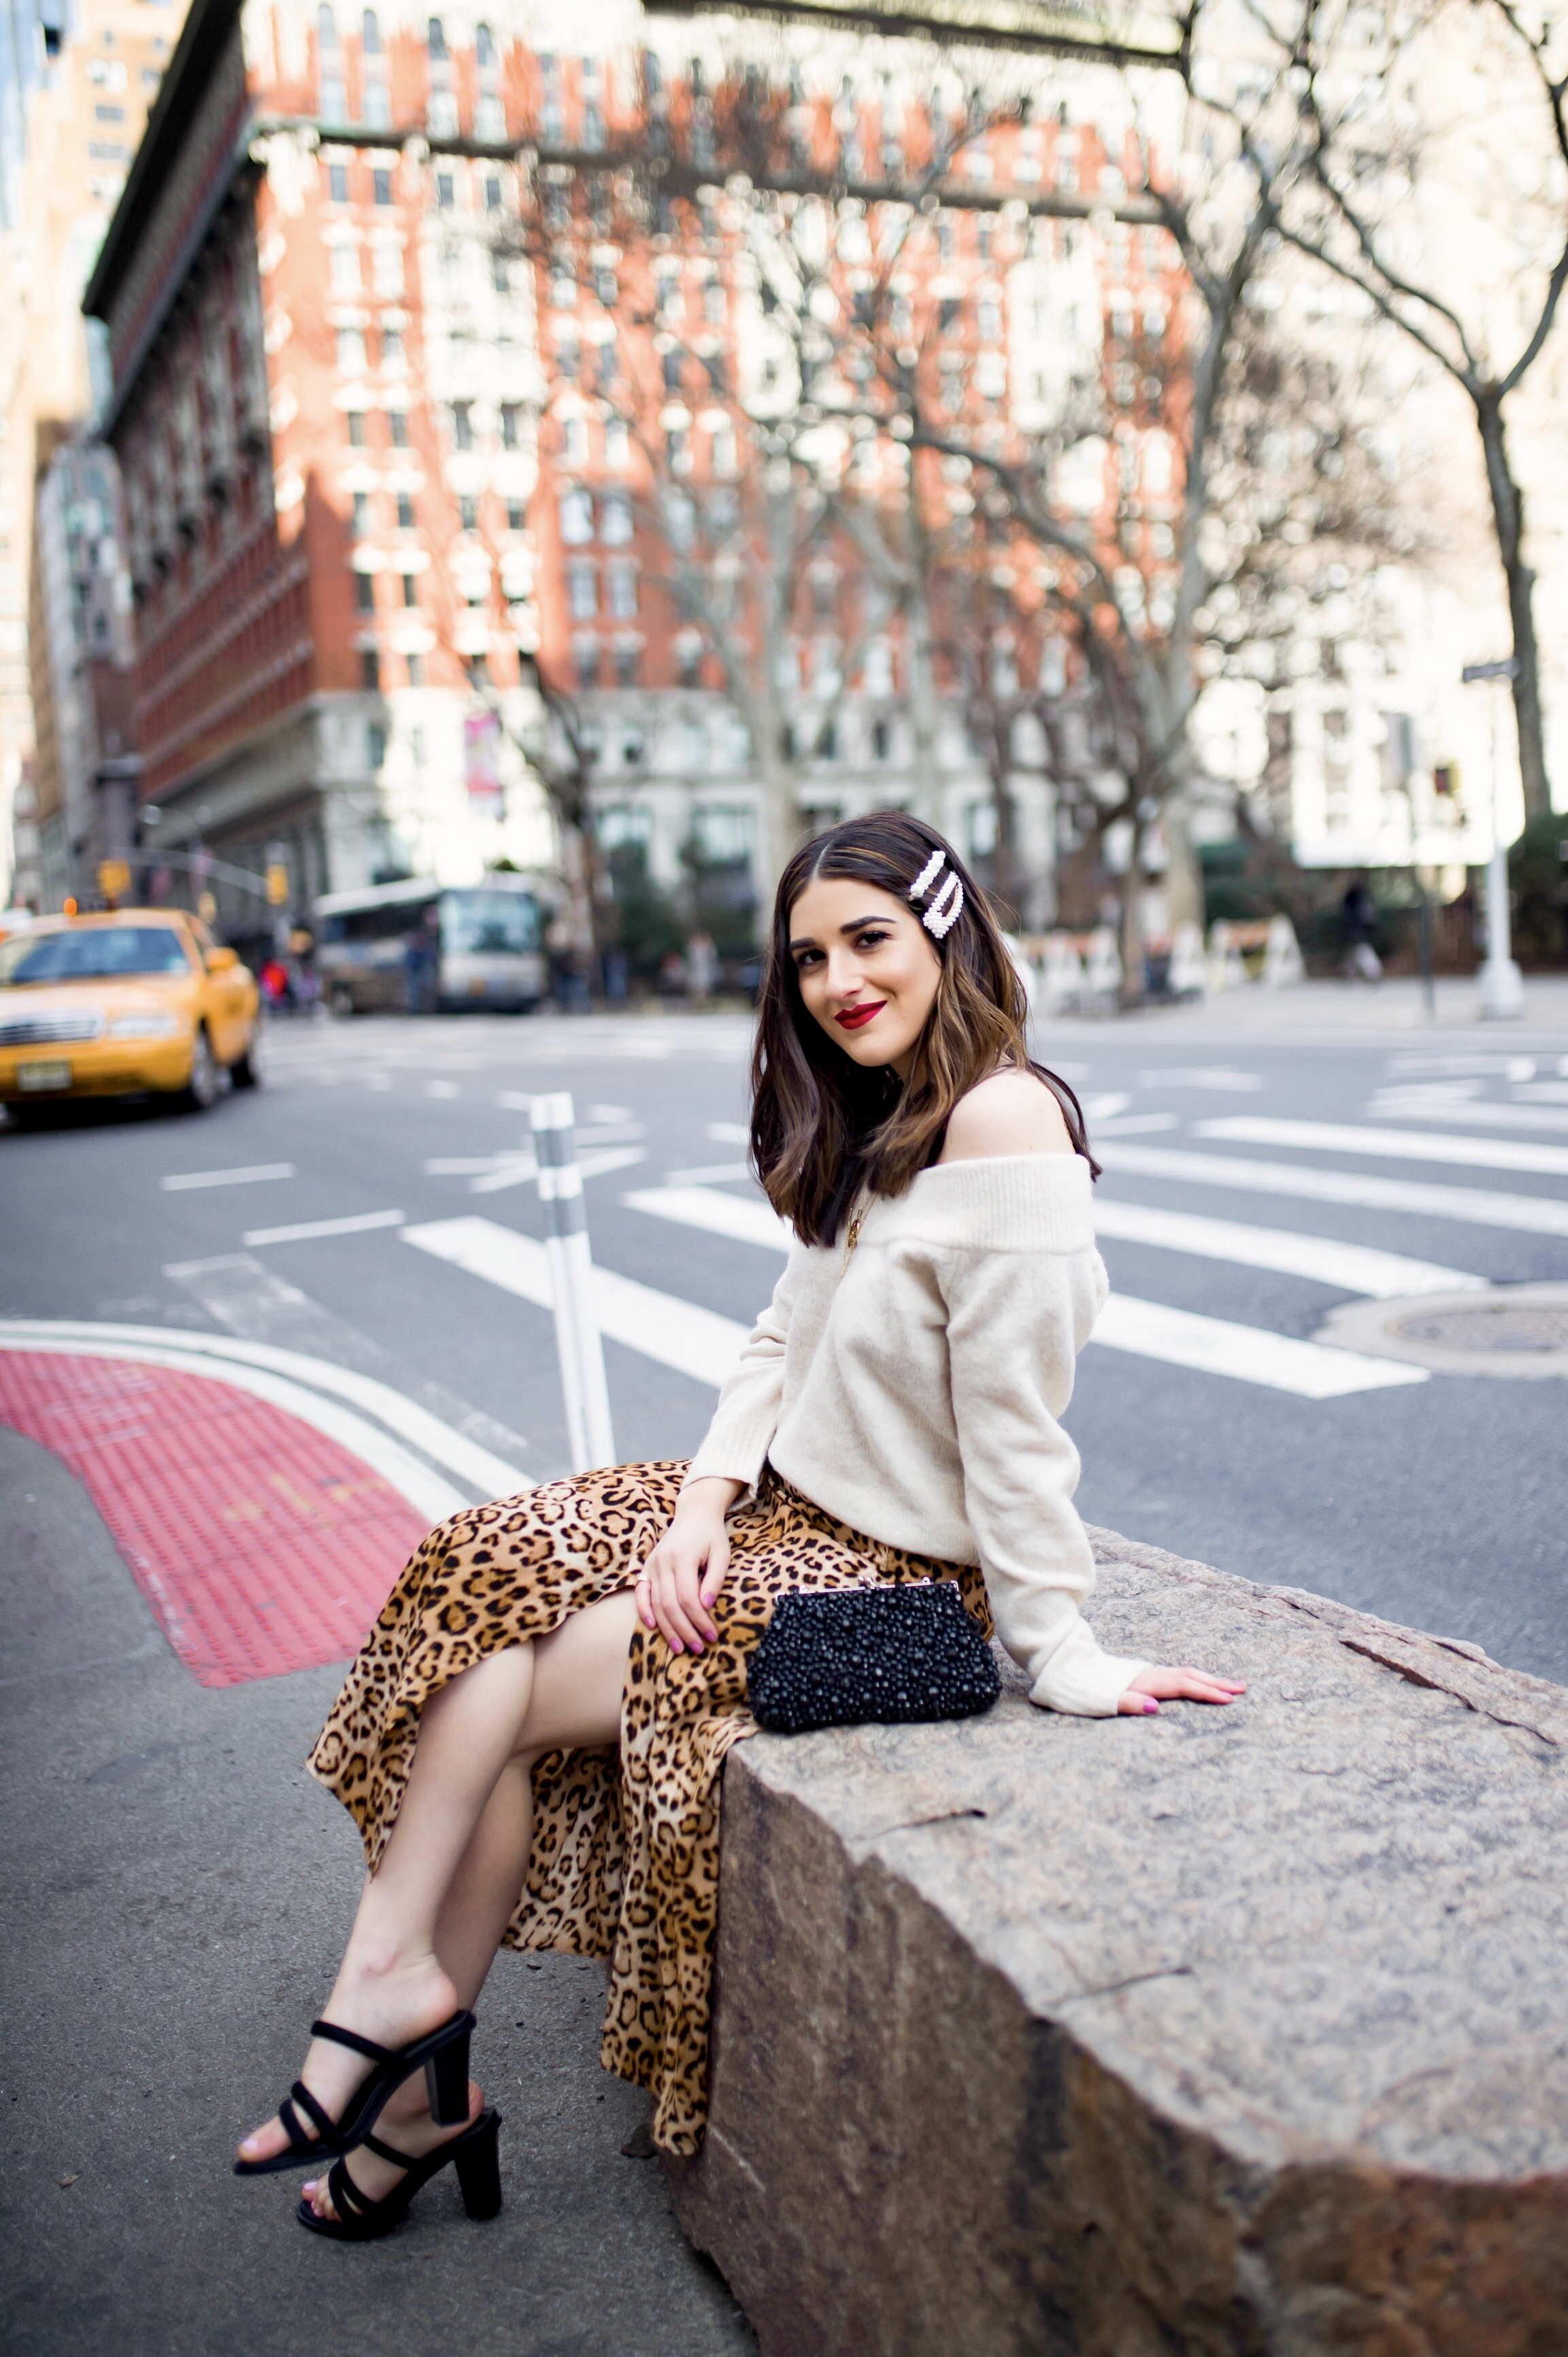 The Instagram Likes Debate Leopard Midi Skirt Beige Sweater Esther Santer Fashion Blog NYC Street Style Blogger Outfit OOTD Trendy Shopping Girl What How To Wear Beige Off The Shoulder Sweater H&M Zara Pearl Barrettes Hair Clips Accessories Sandals.jpg